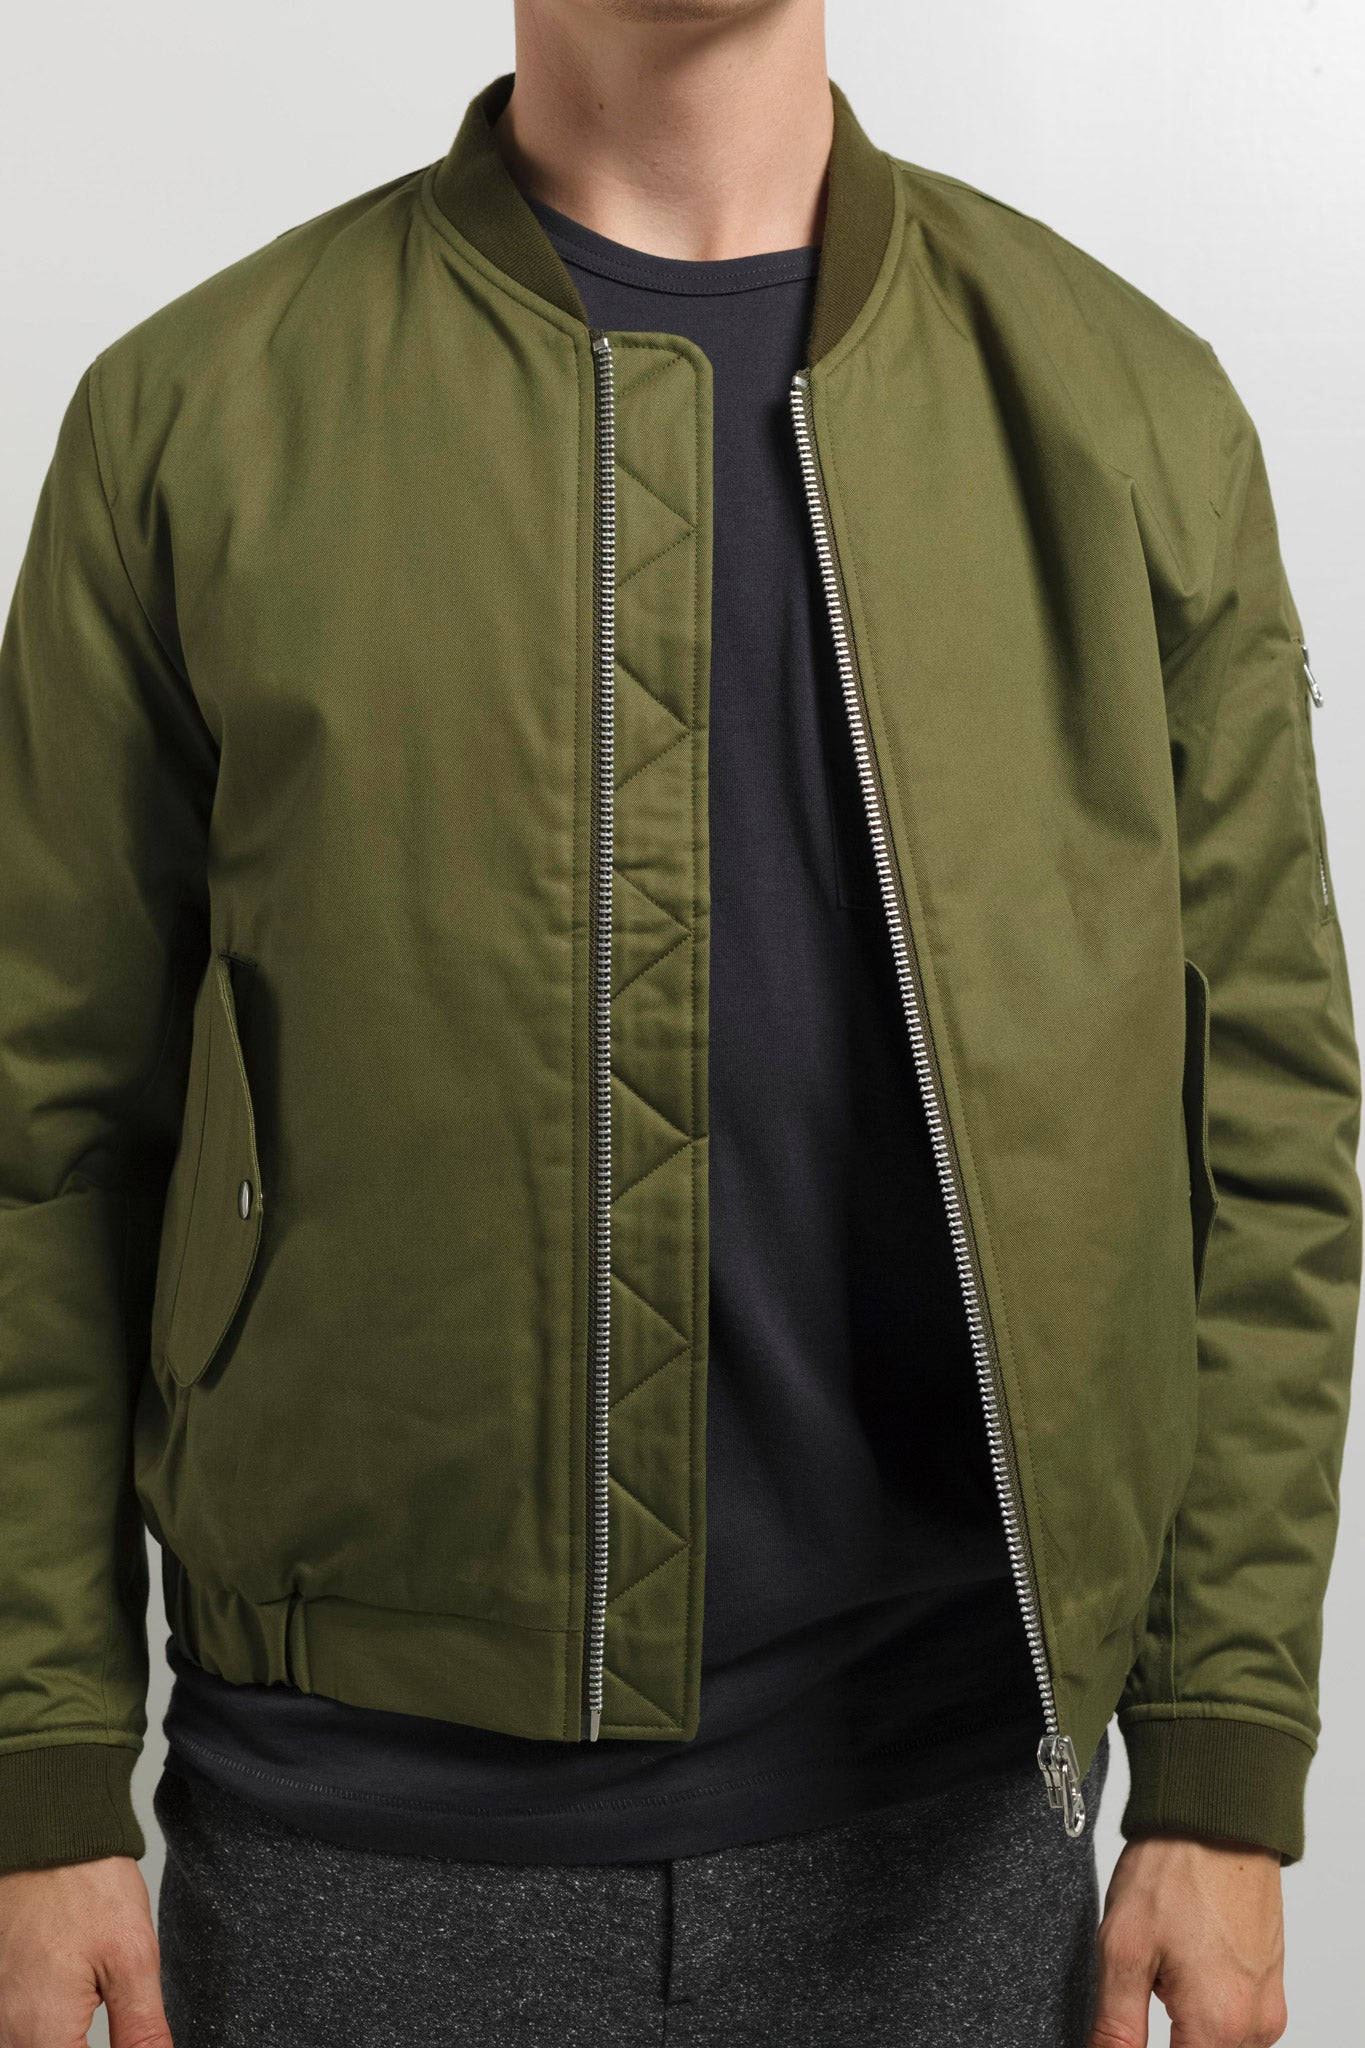 MA-1 Jacket in Green